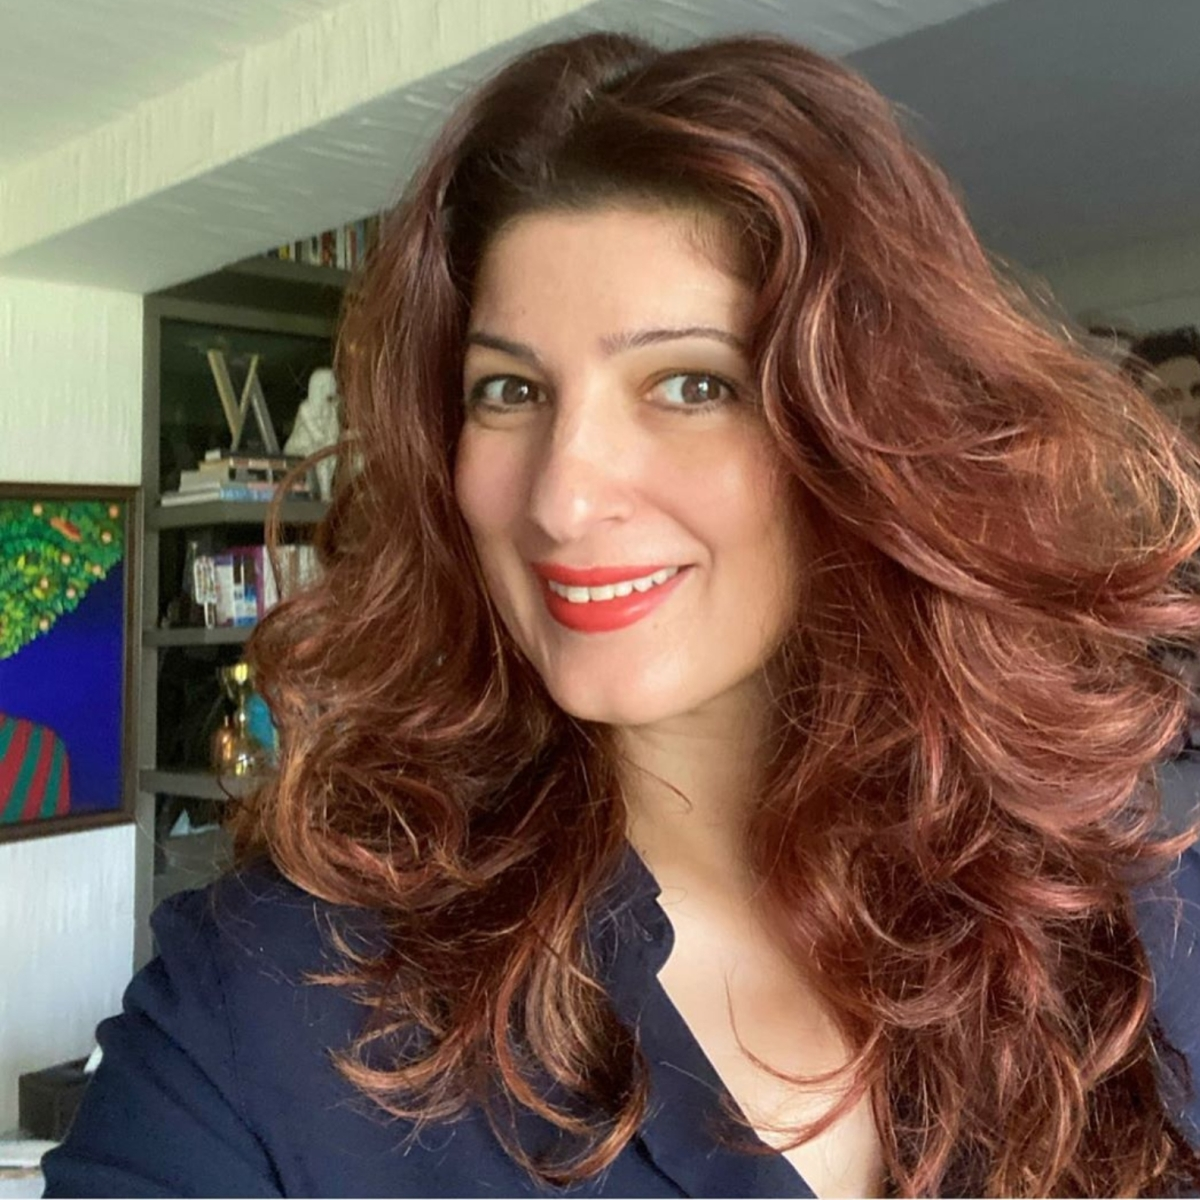 Twinkle Khanna predicted her future 25 years ago; internet goes berserk over shared snippets